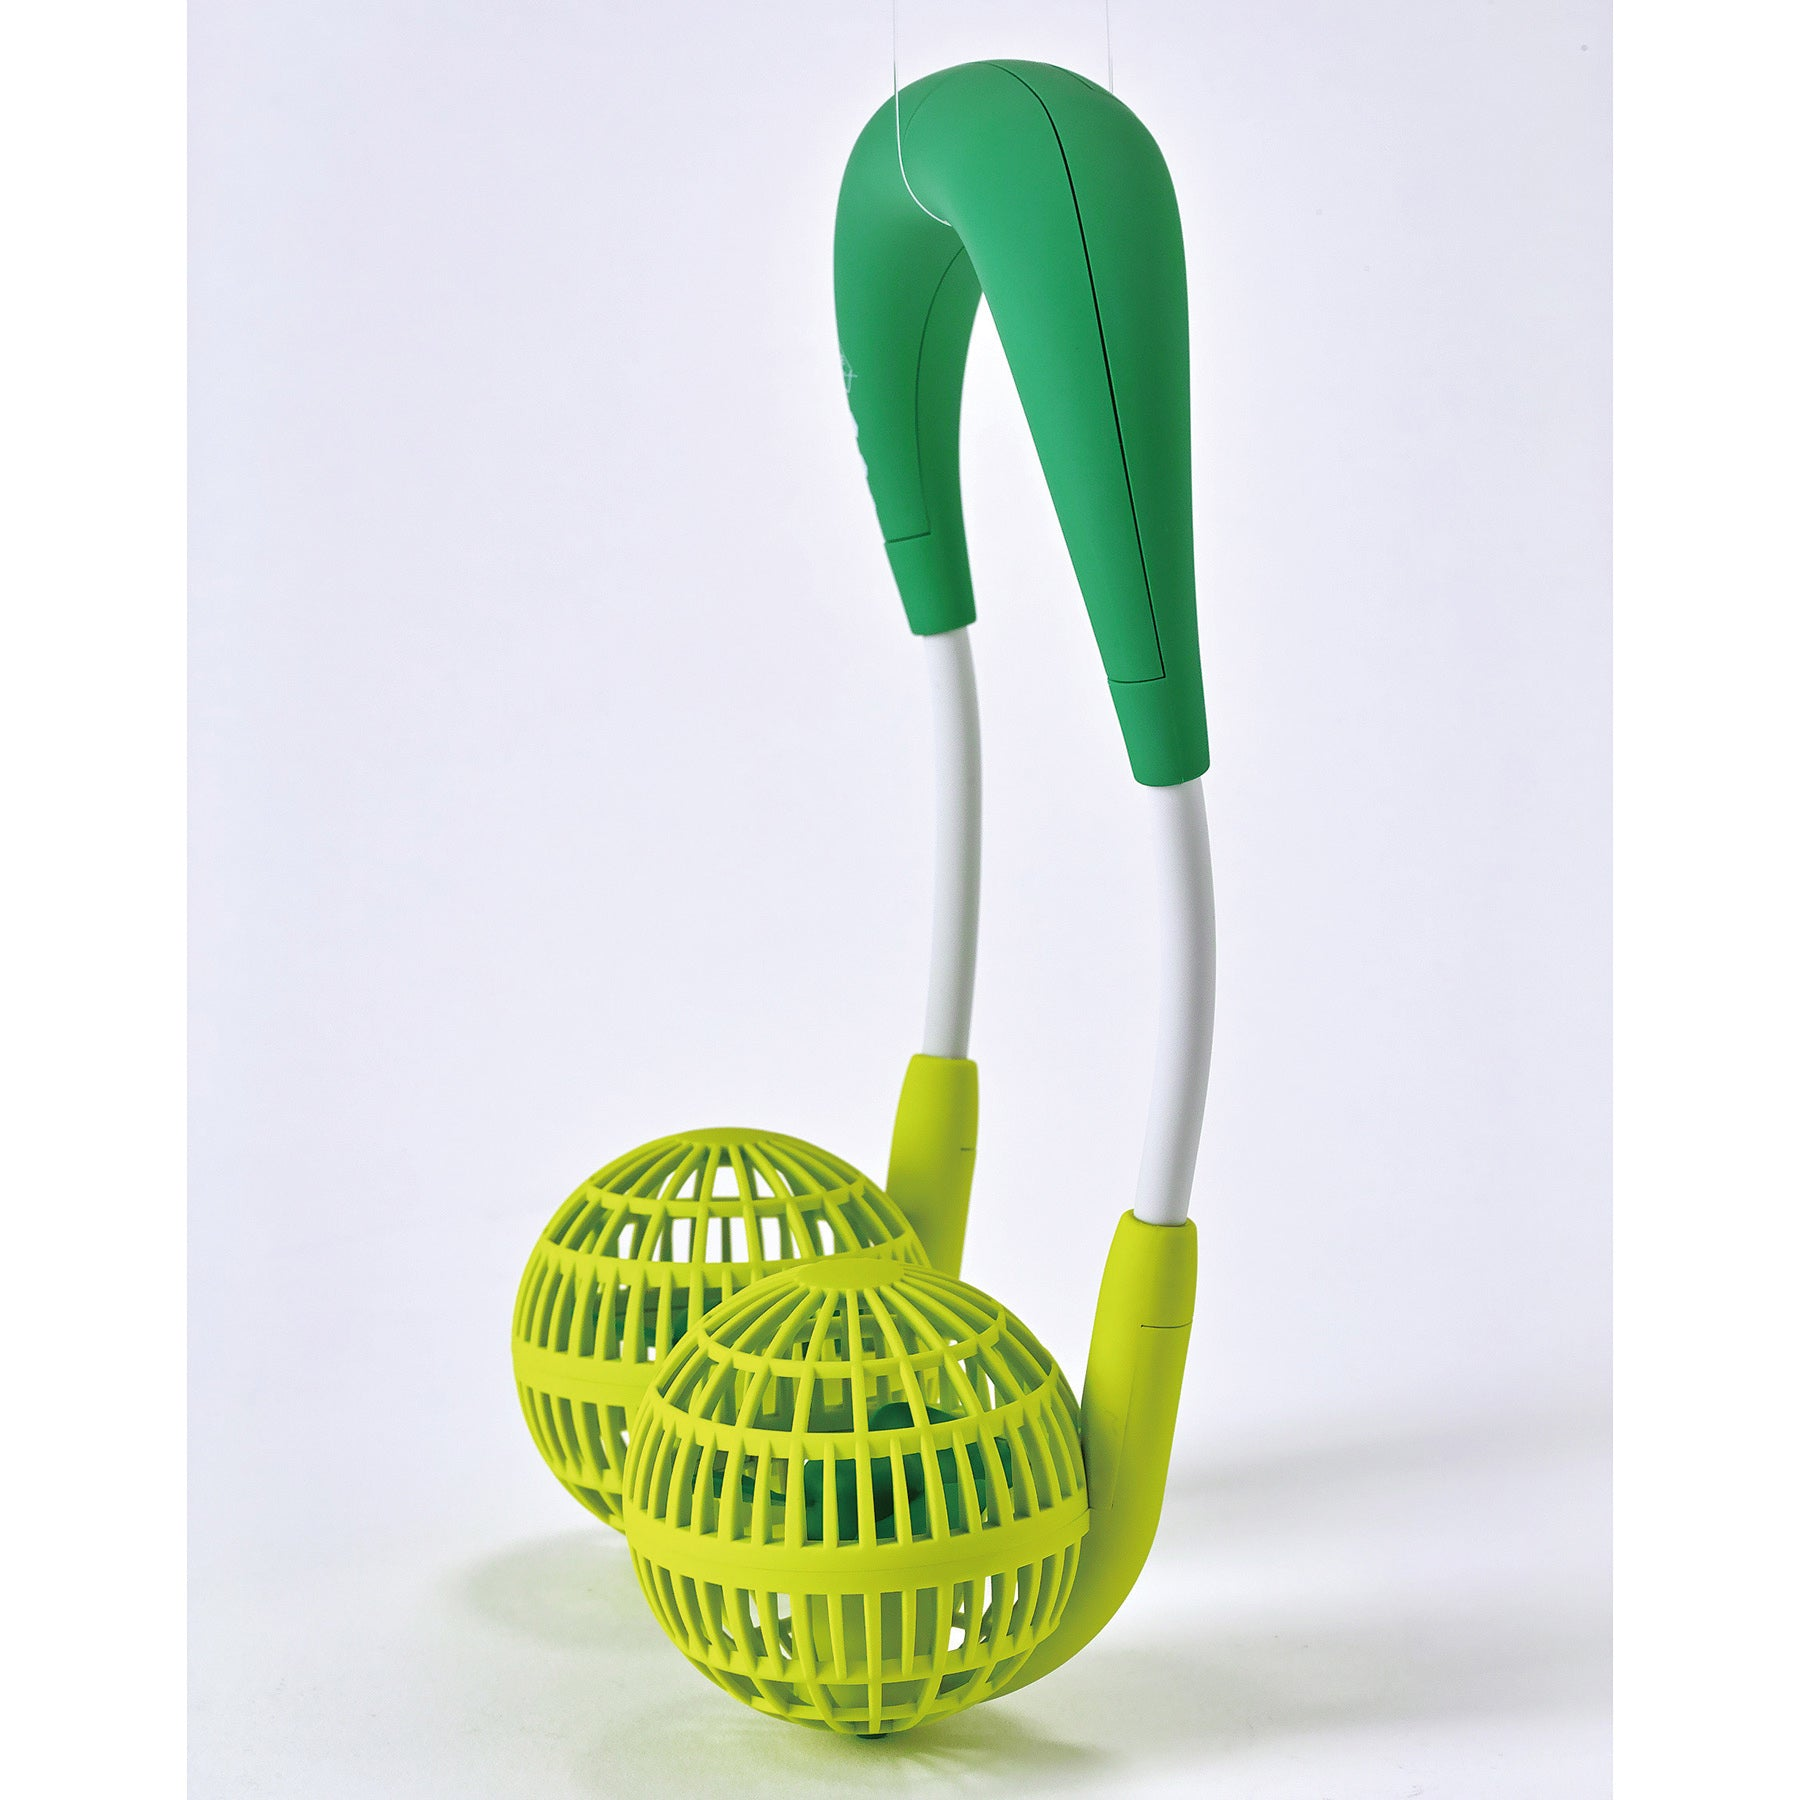 W Fan Wearable Hands free fan For Kids 2.0 Edition Green